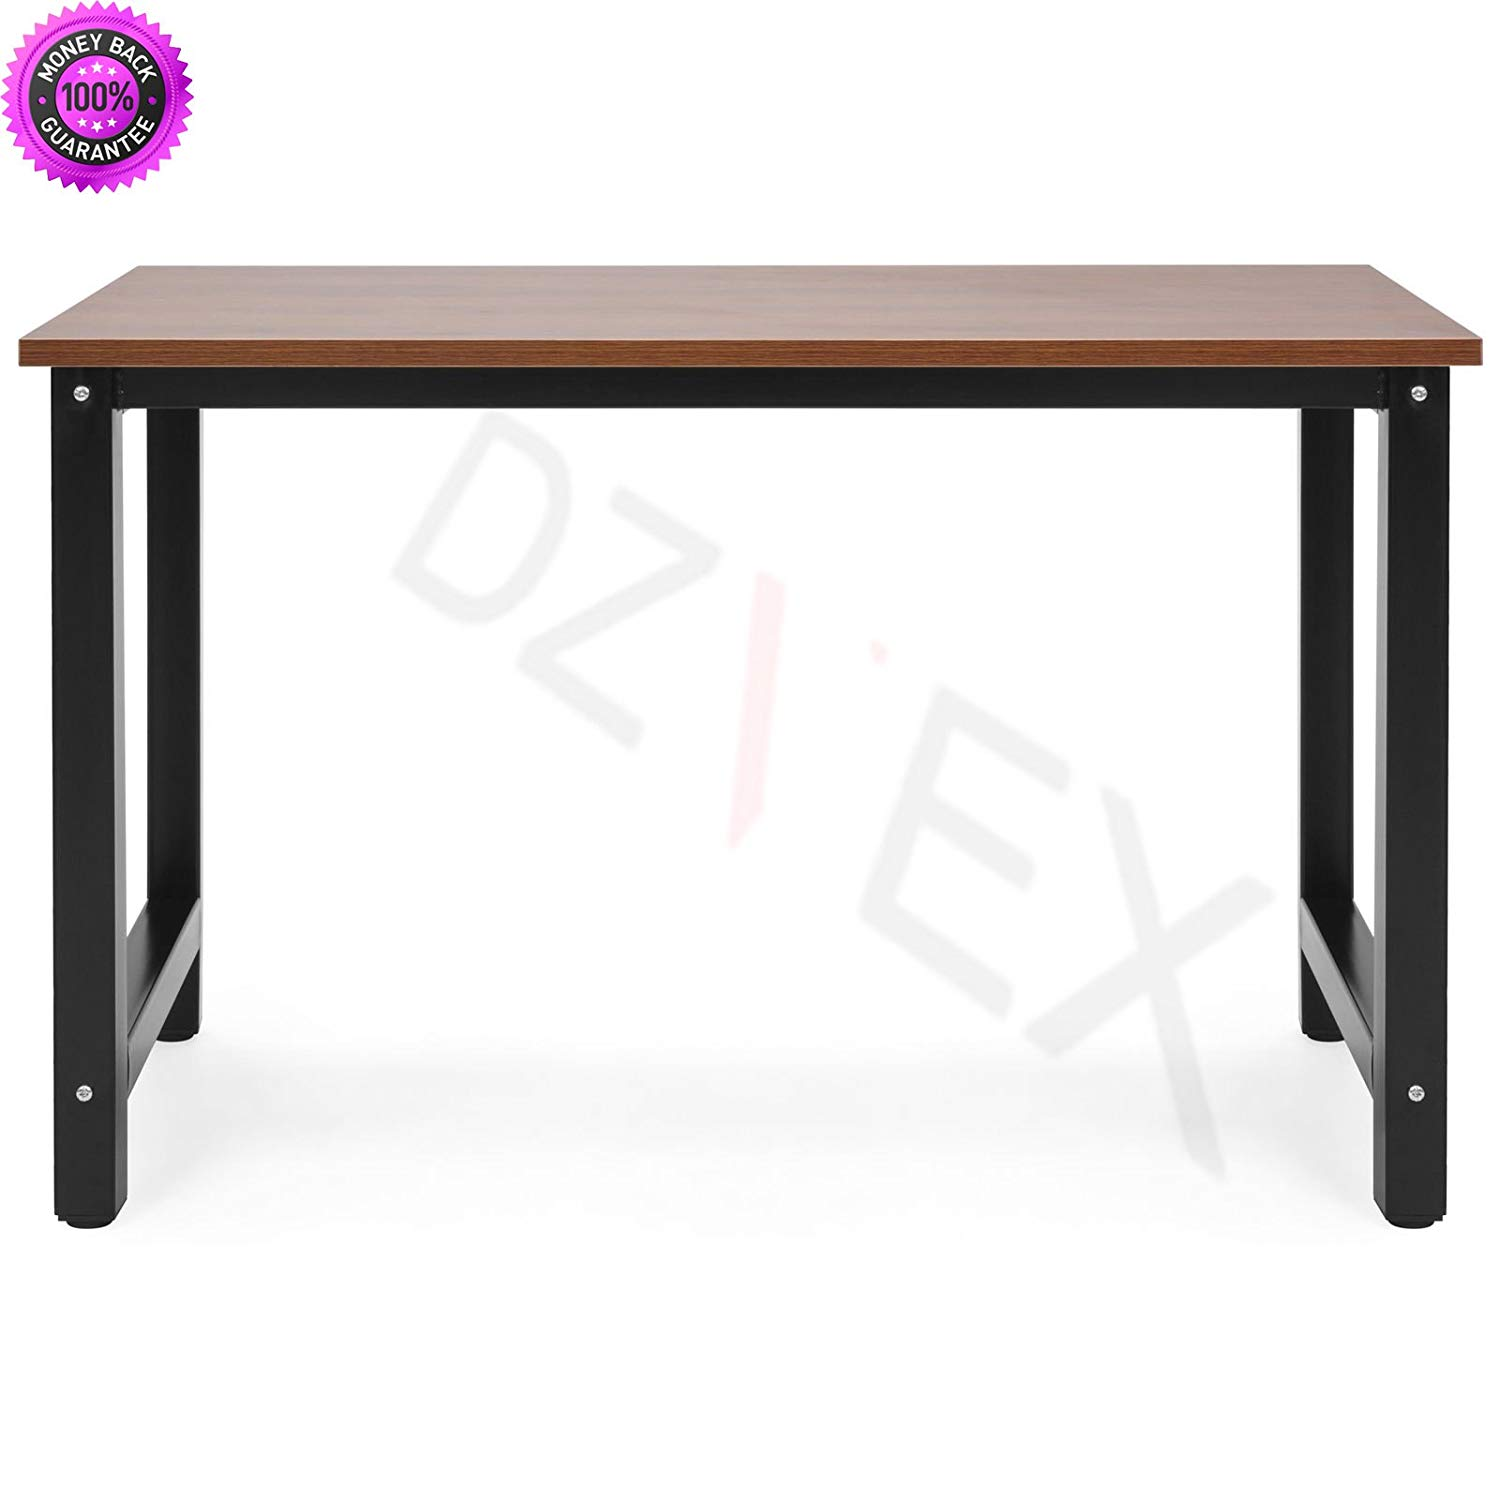 DzVeX_Large Modern Computer Table Writing Desk for Home and Office - Brown/Black And home office furniture sets commercial office furniture home office desk home office furniture collections modular